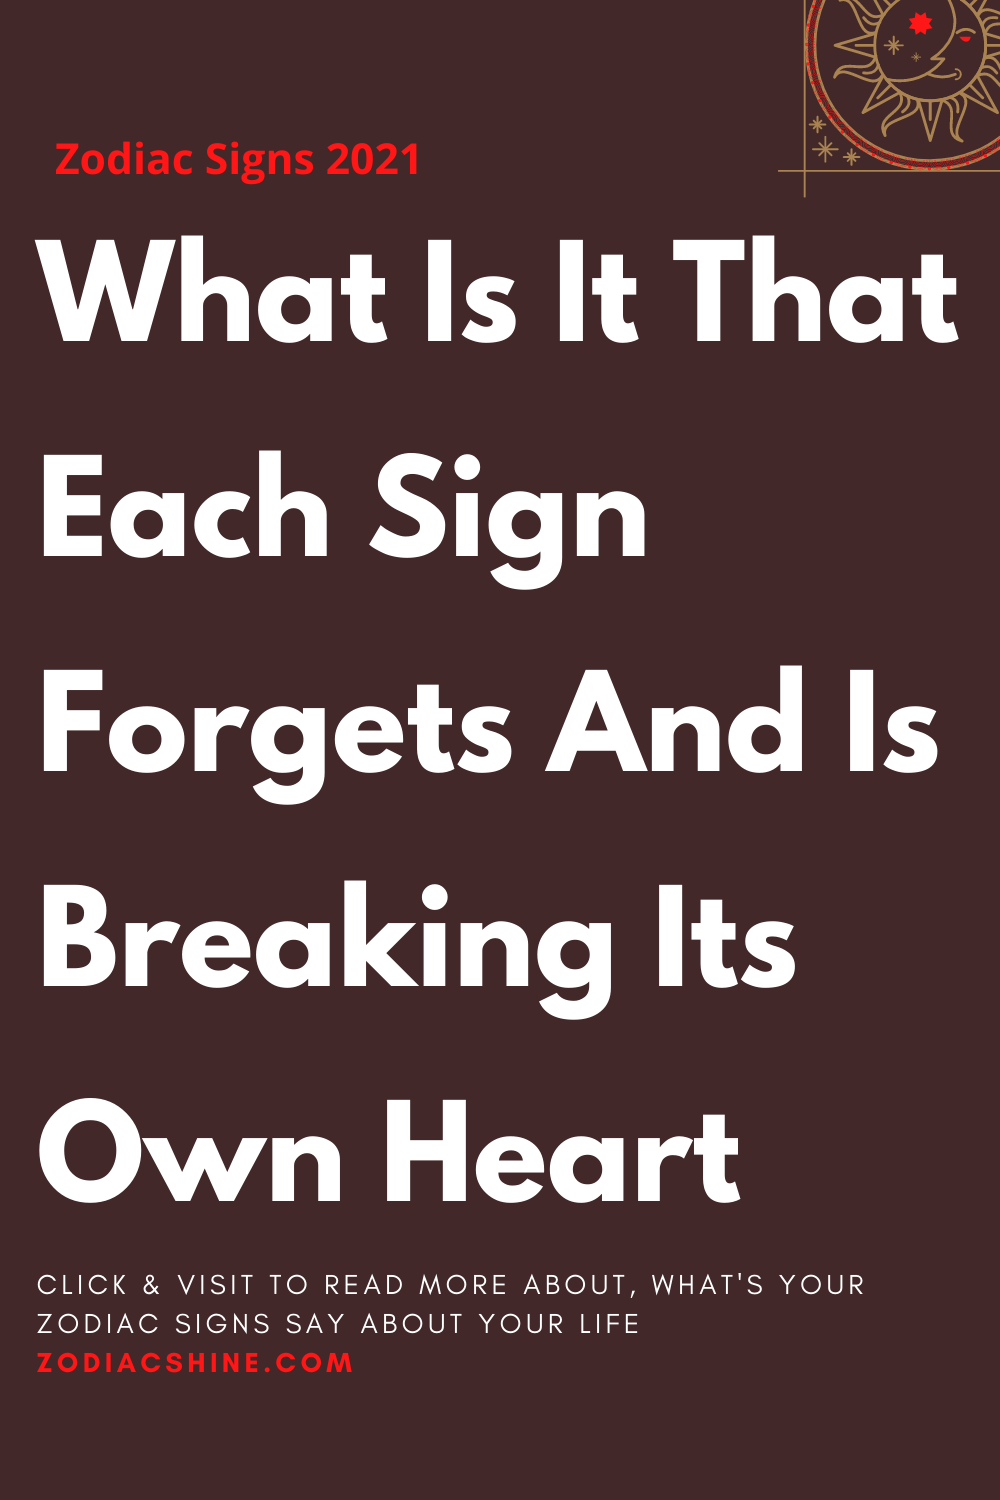 What Is It That Each Sign Forgets And Is Breaking Its Own Heart